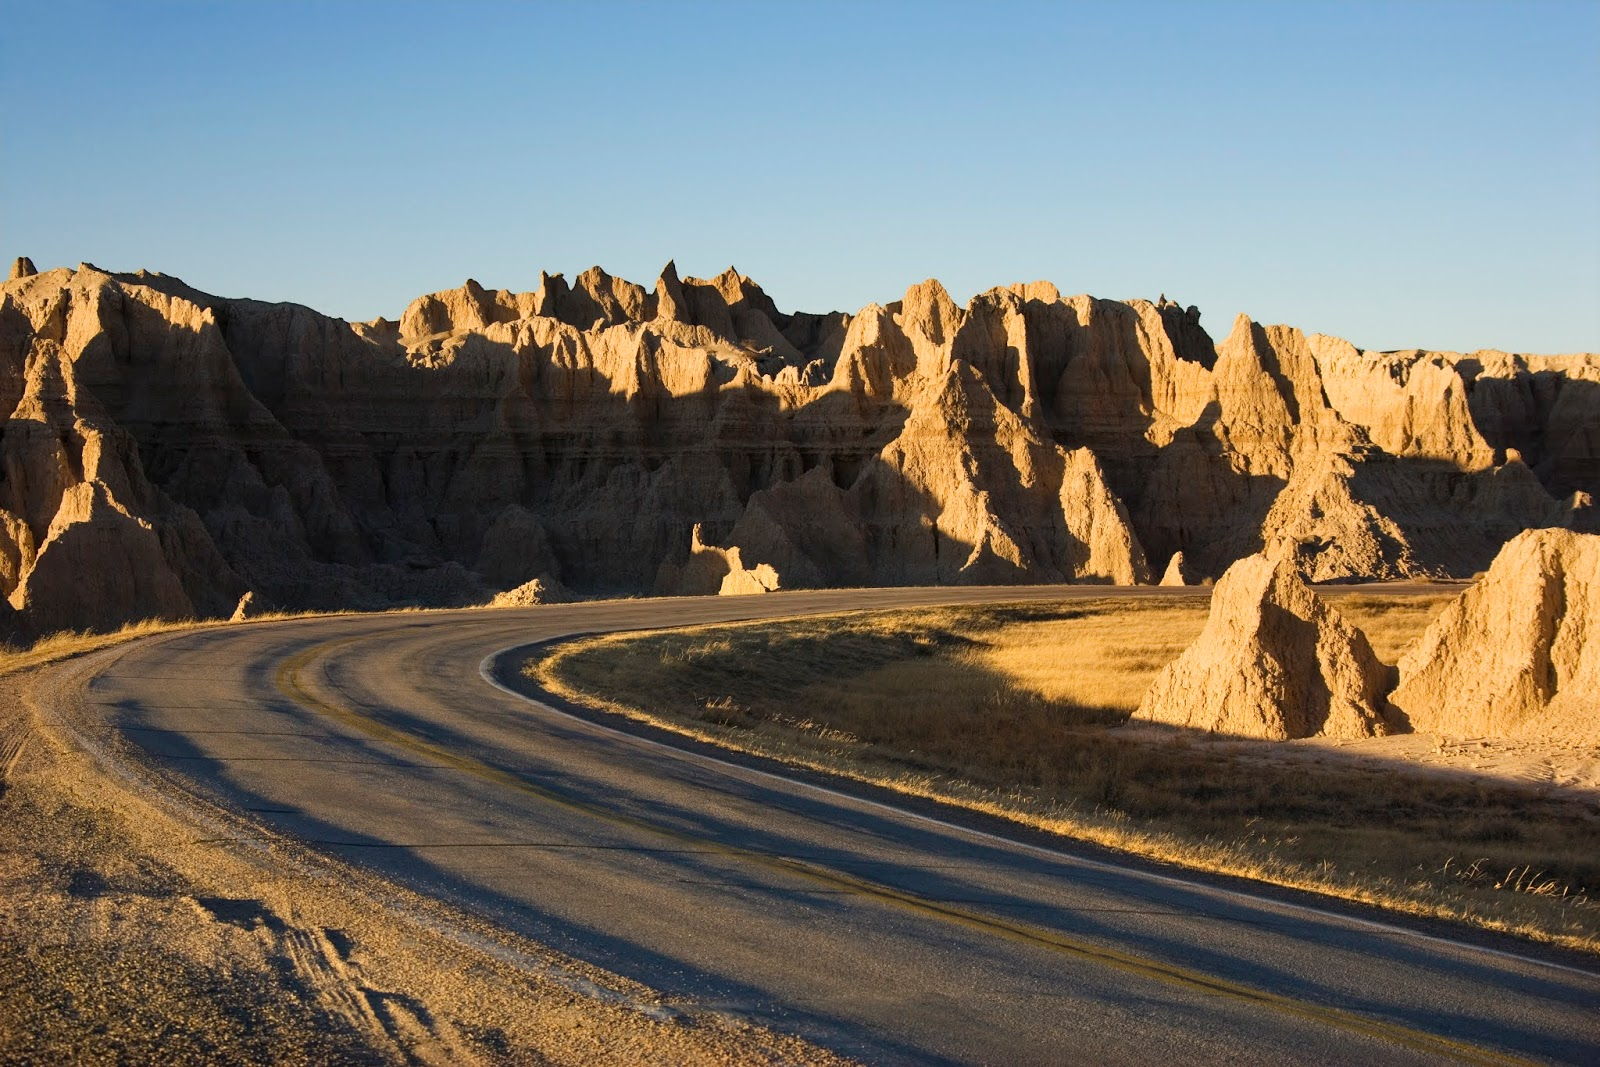 Midwest: Badlands Scenic Loop